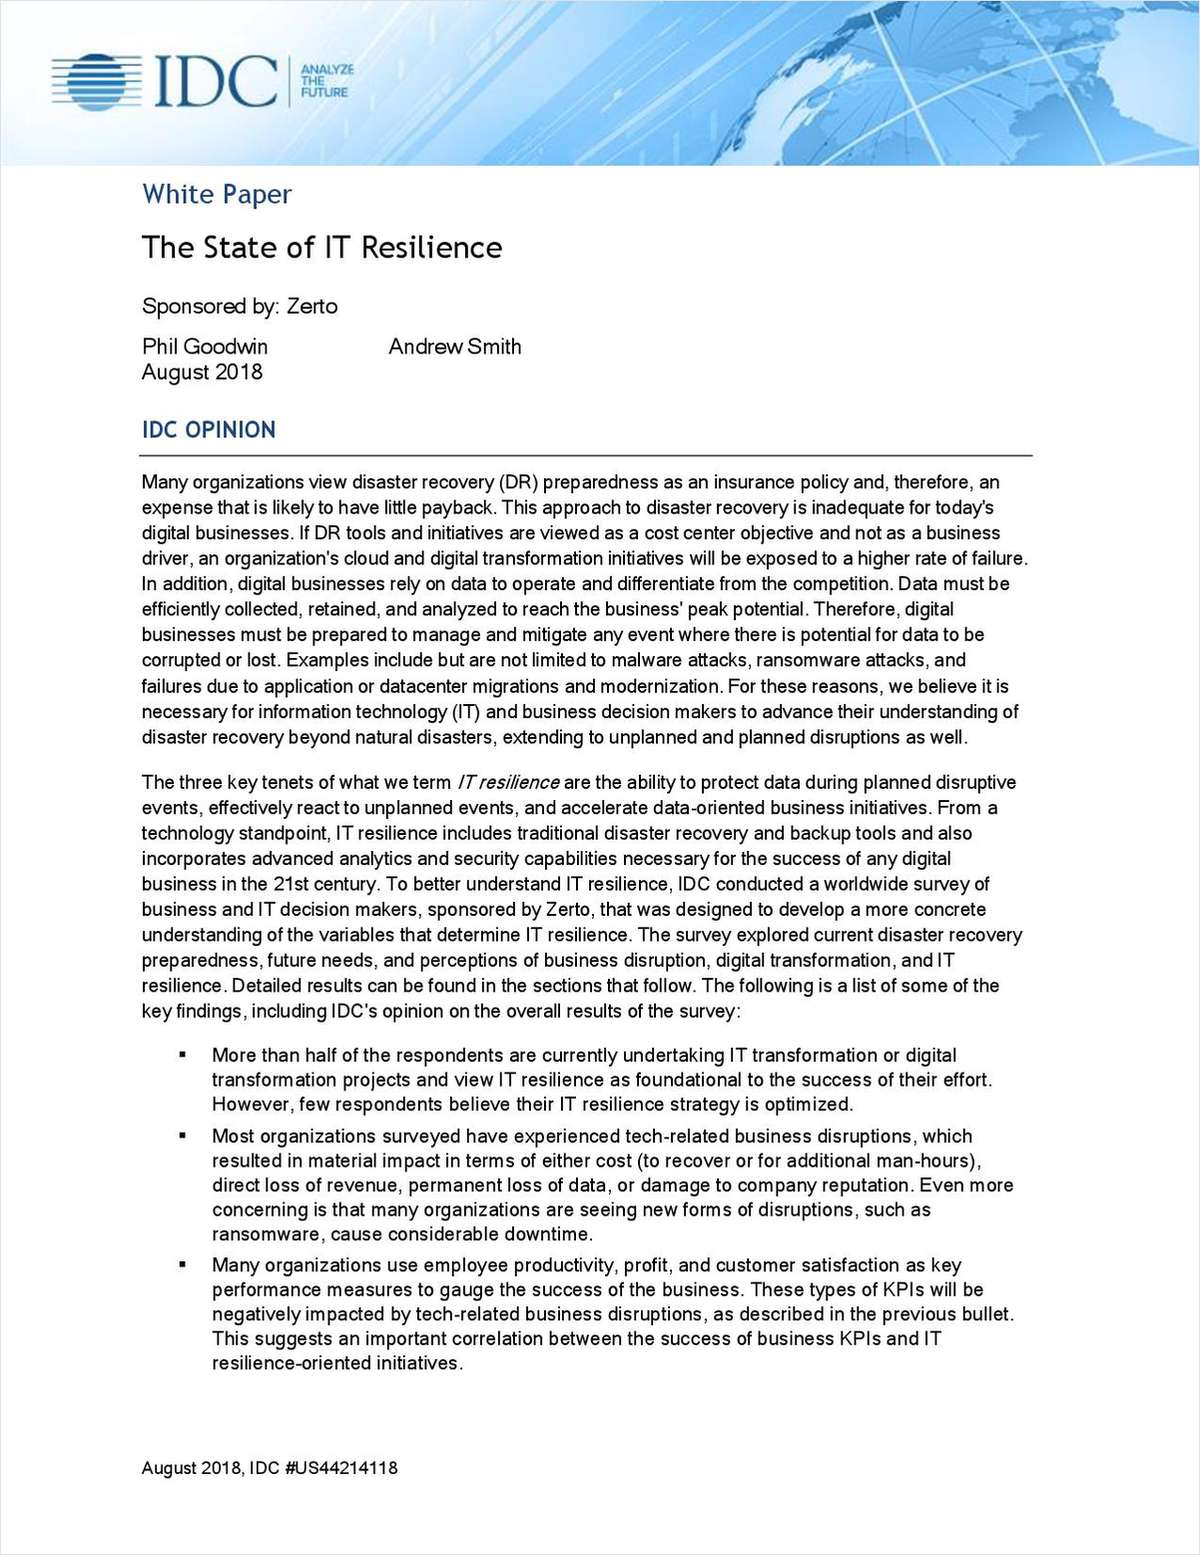 IDC Report: The State of IT Resilience